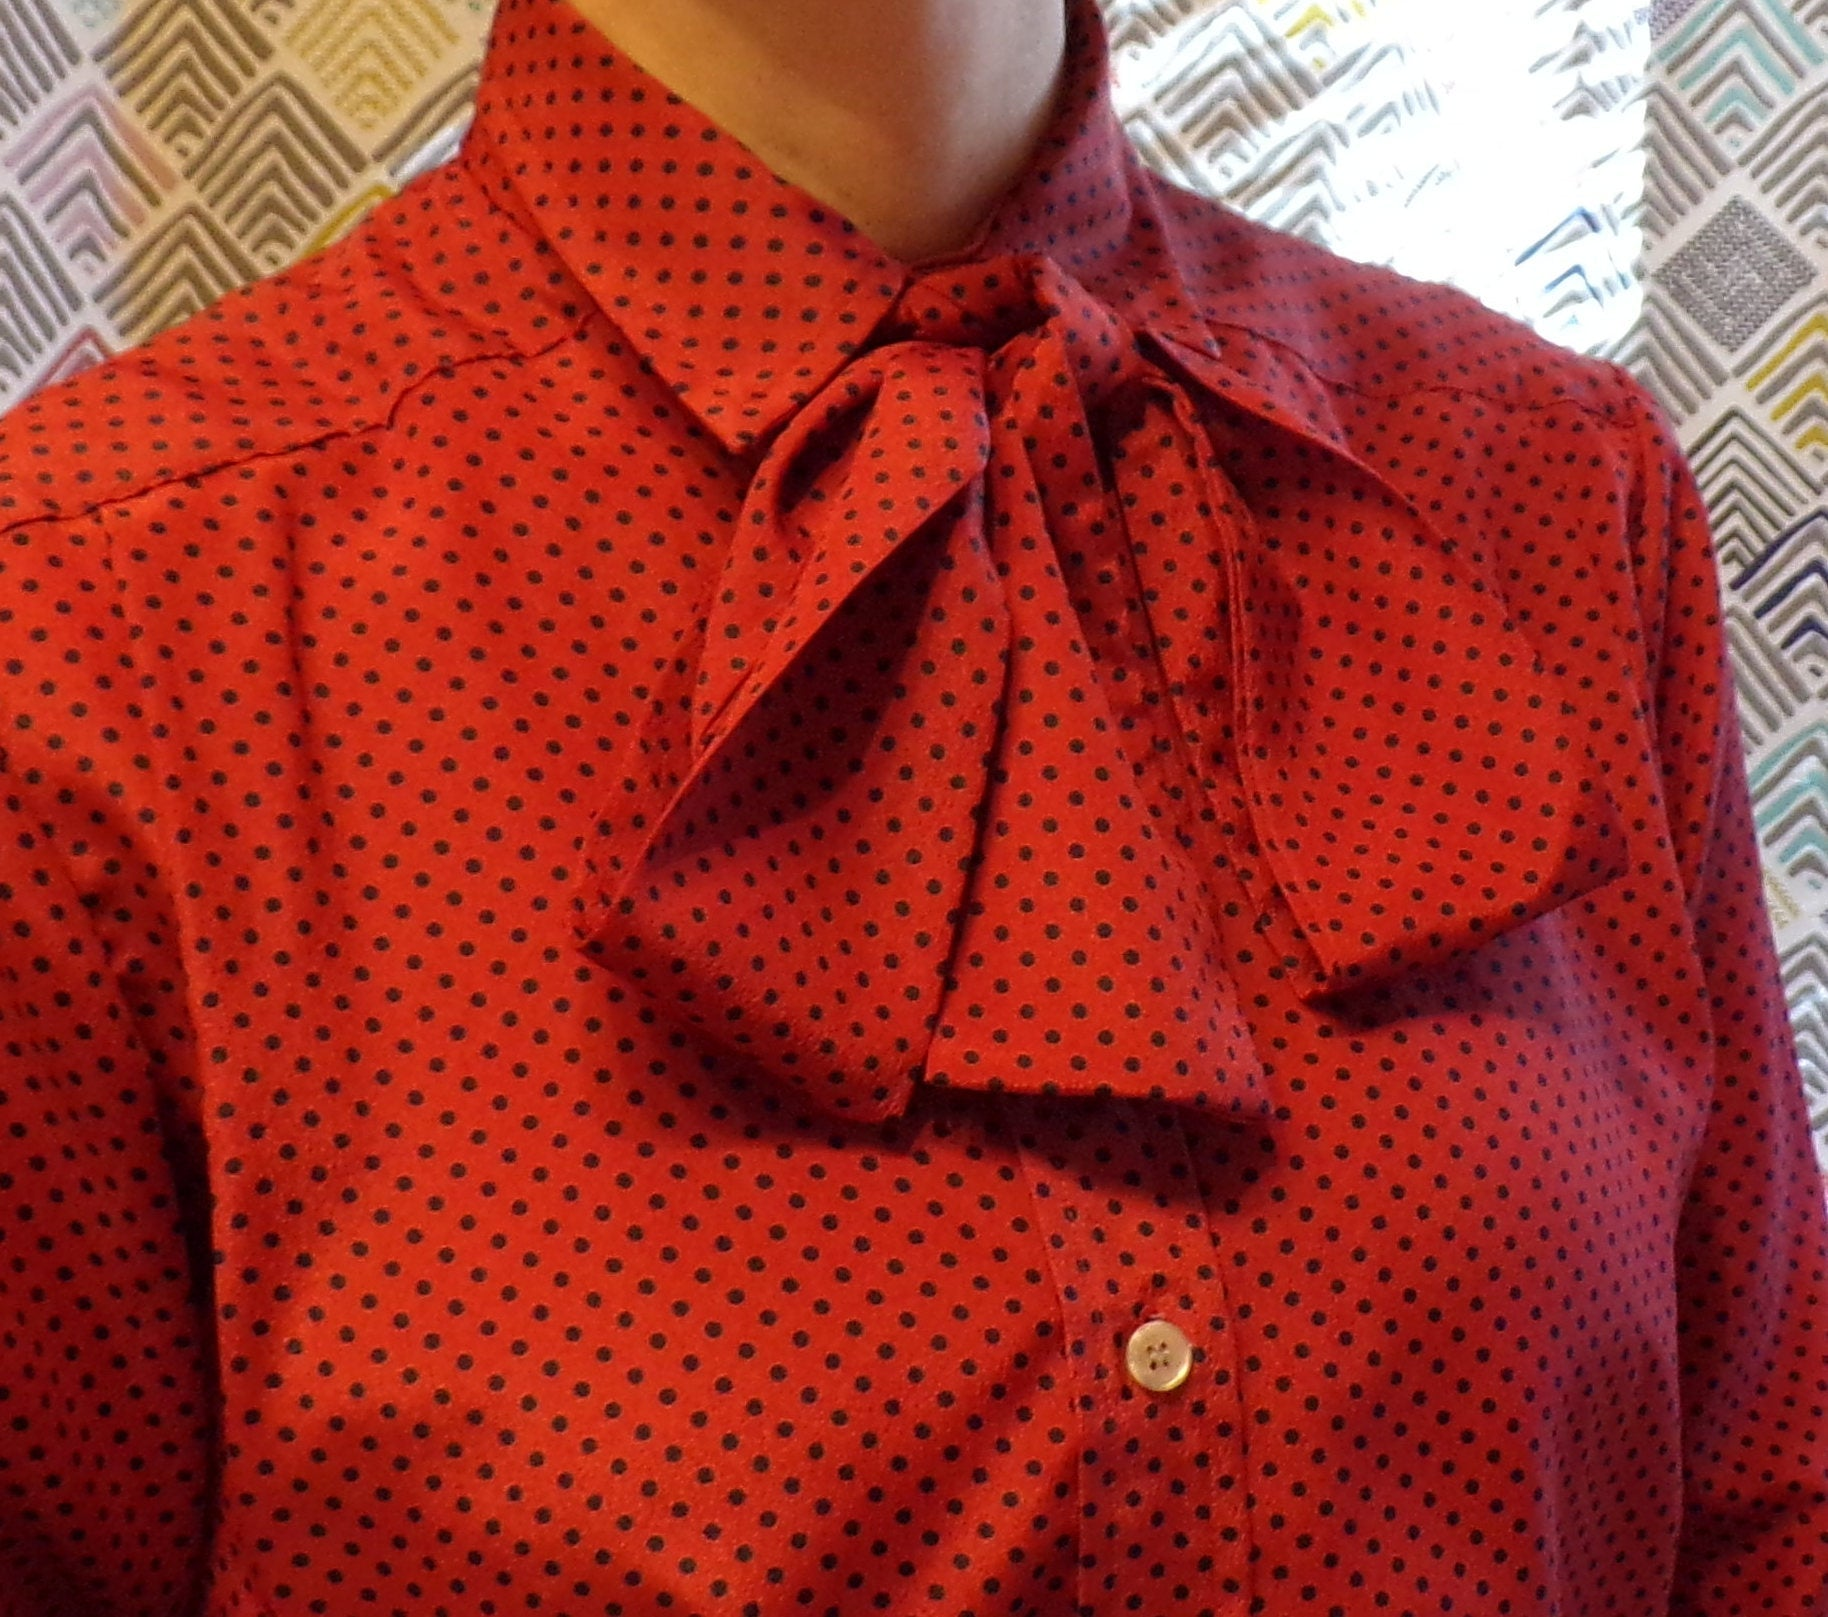 CORAL and NAVY vintage BLOUSE pussy bow tie neck polka dot S M (H2)